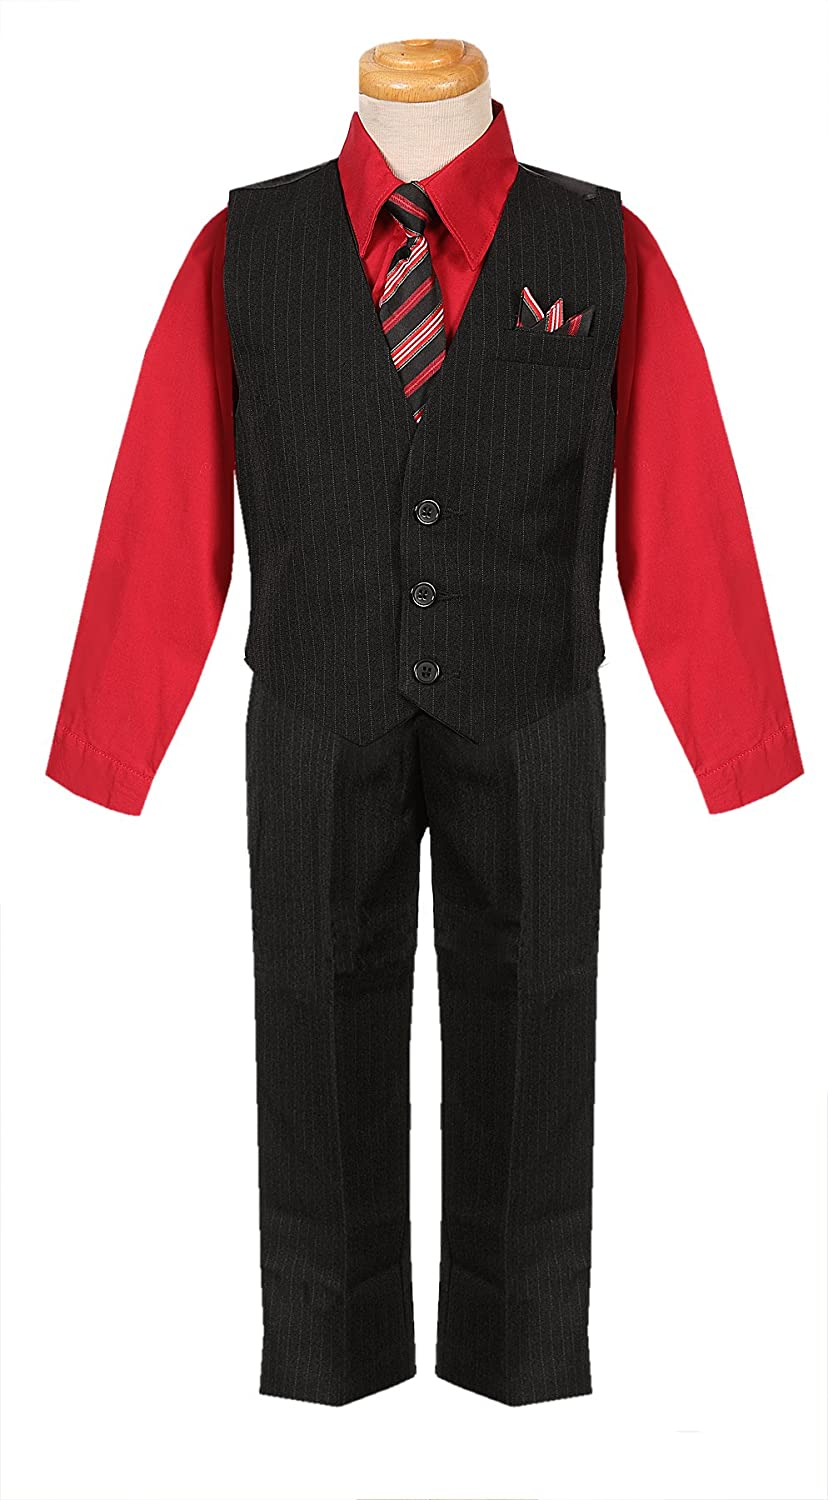 Rafael Classic Cut Black/red Boys Formal Suit with Matching Tie and Redshirt